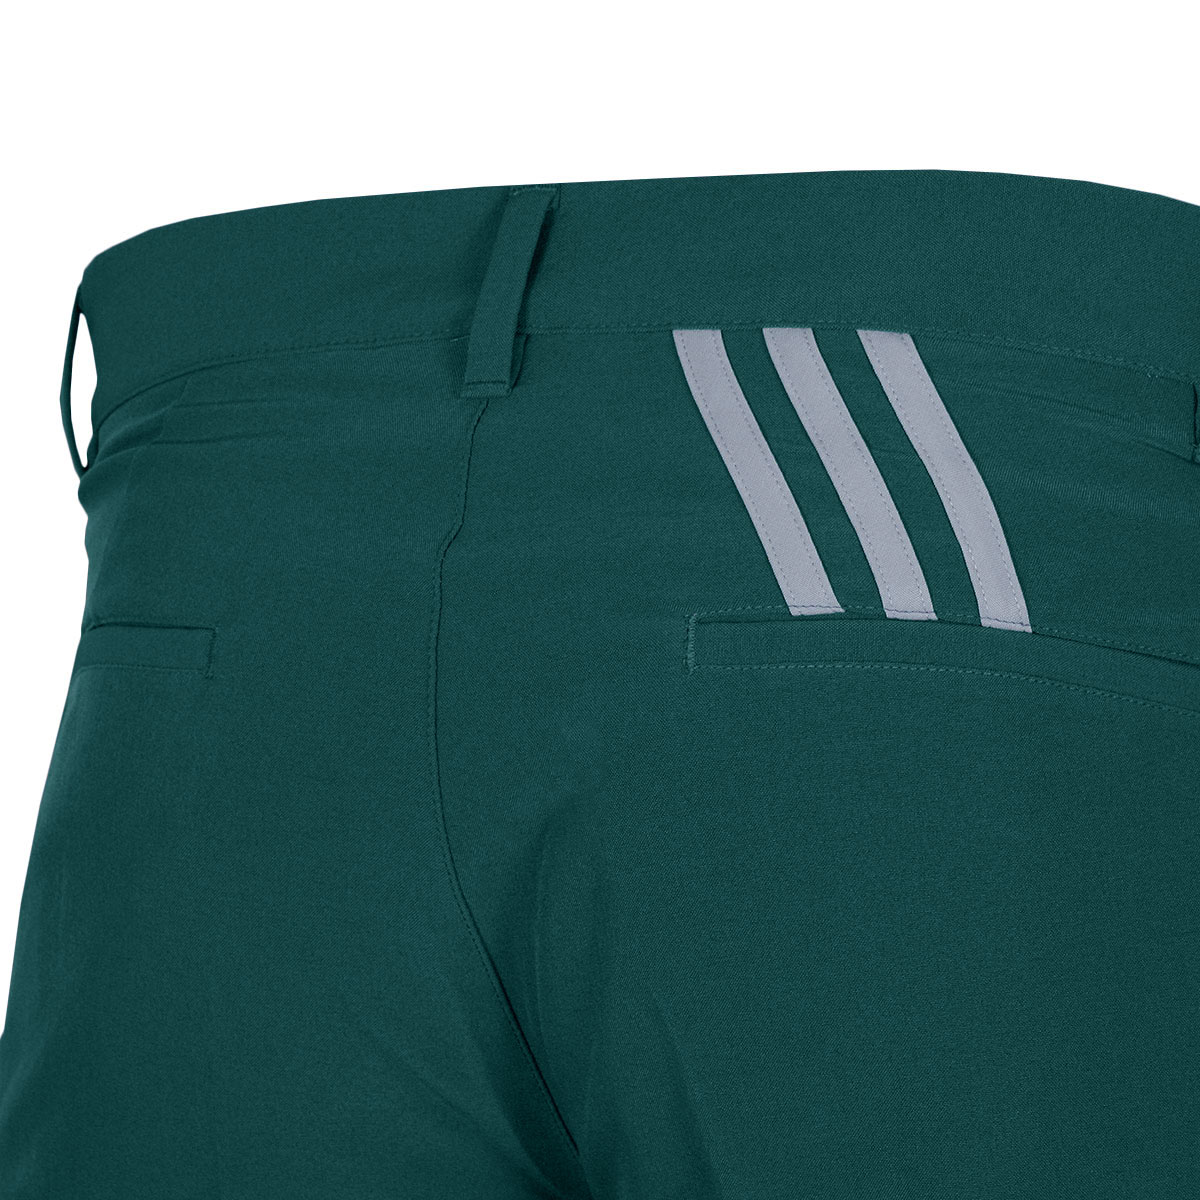 adidas-Golf-Mens-Ultimate-3-Stripes-Stretch-Pant-Trousers-44-OFF-RRP Indexbild 42